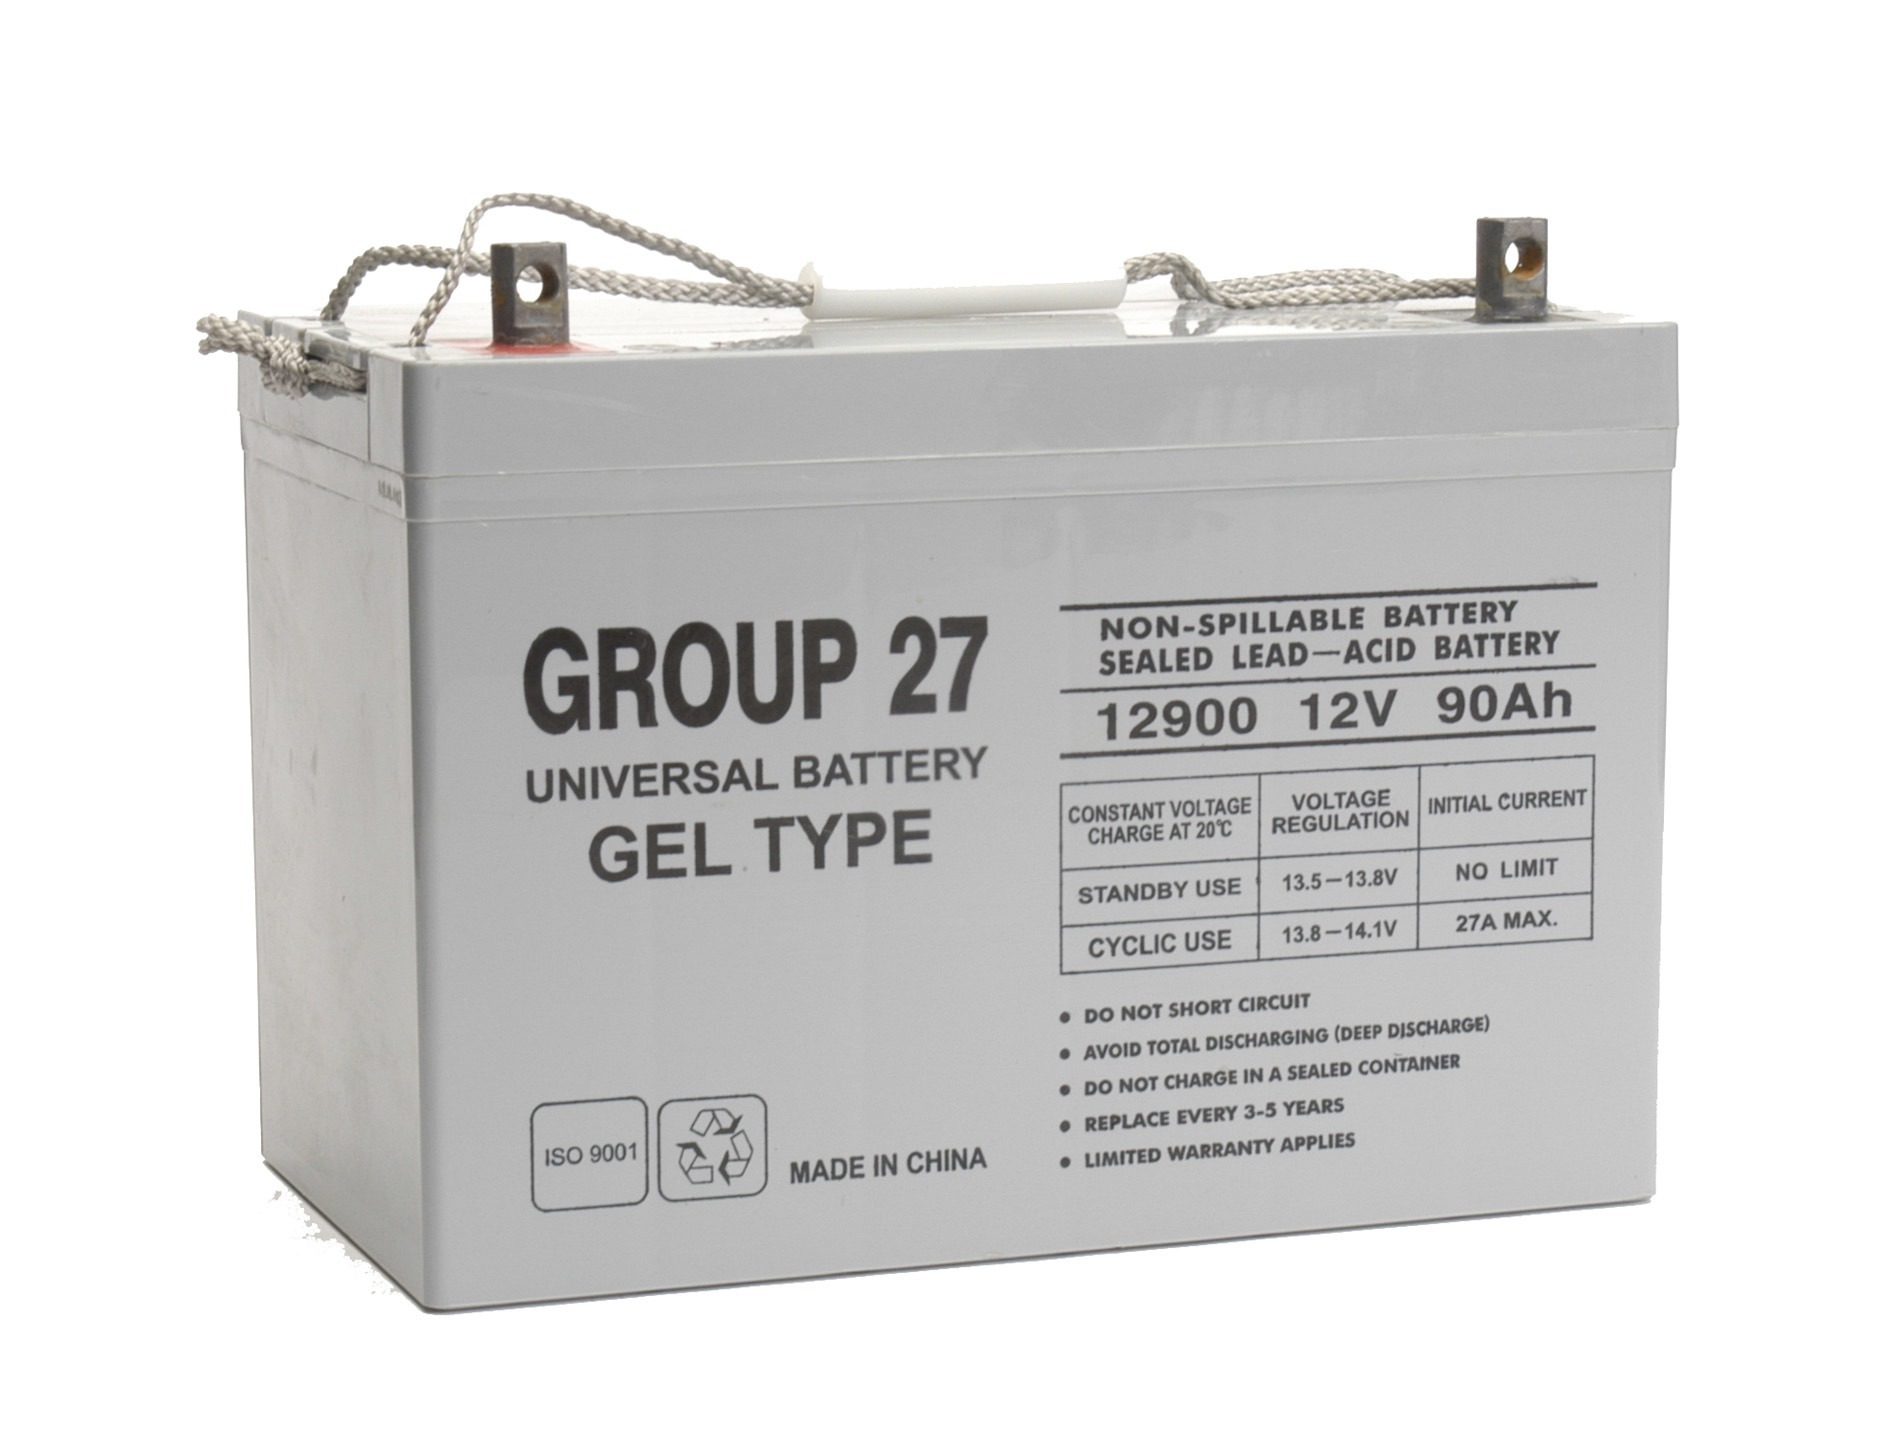 12v 90ah (Group 27) Gel Battery for Advance Adfinity X20C Sweeper